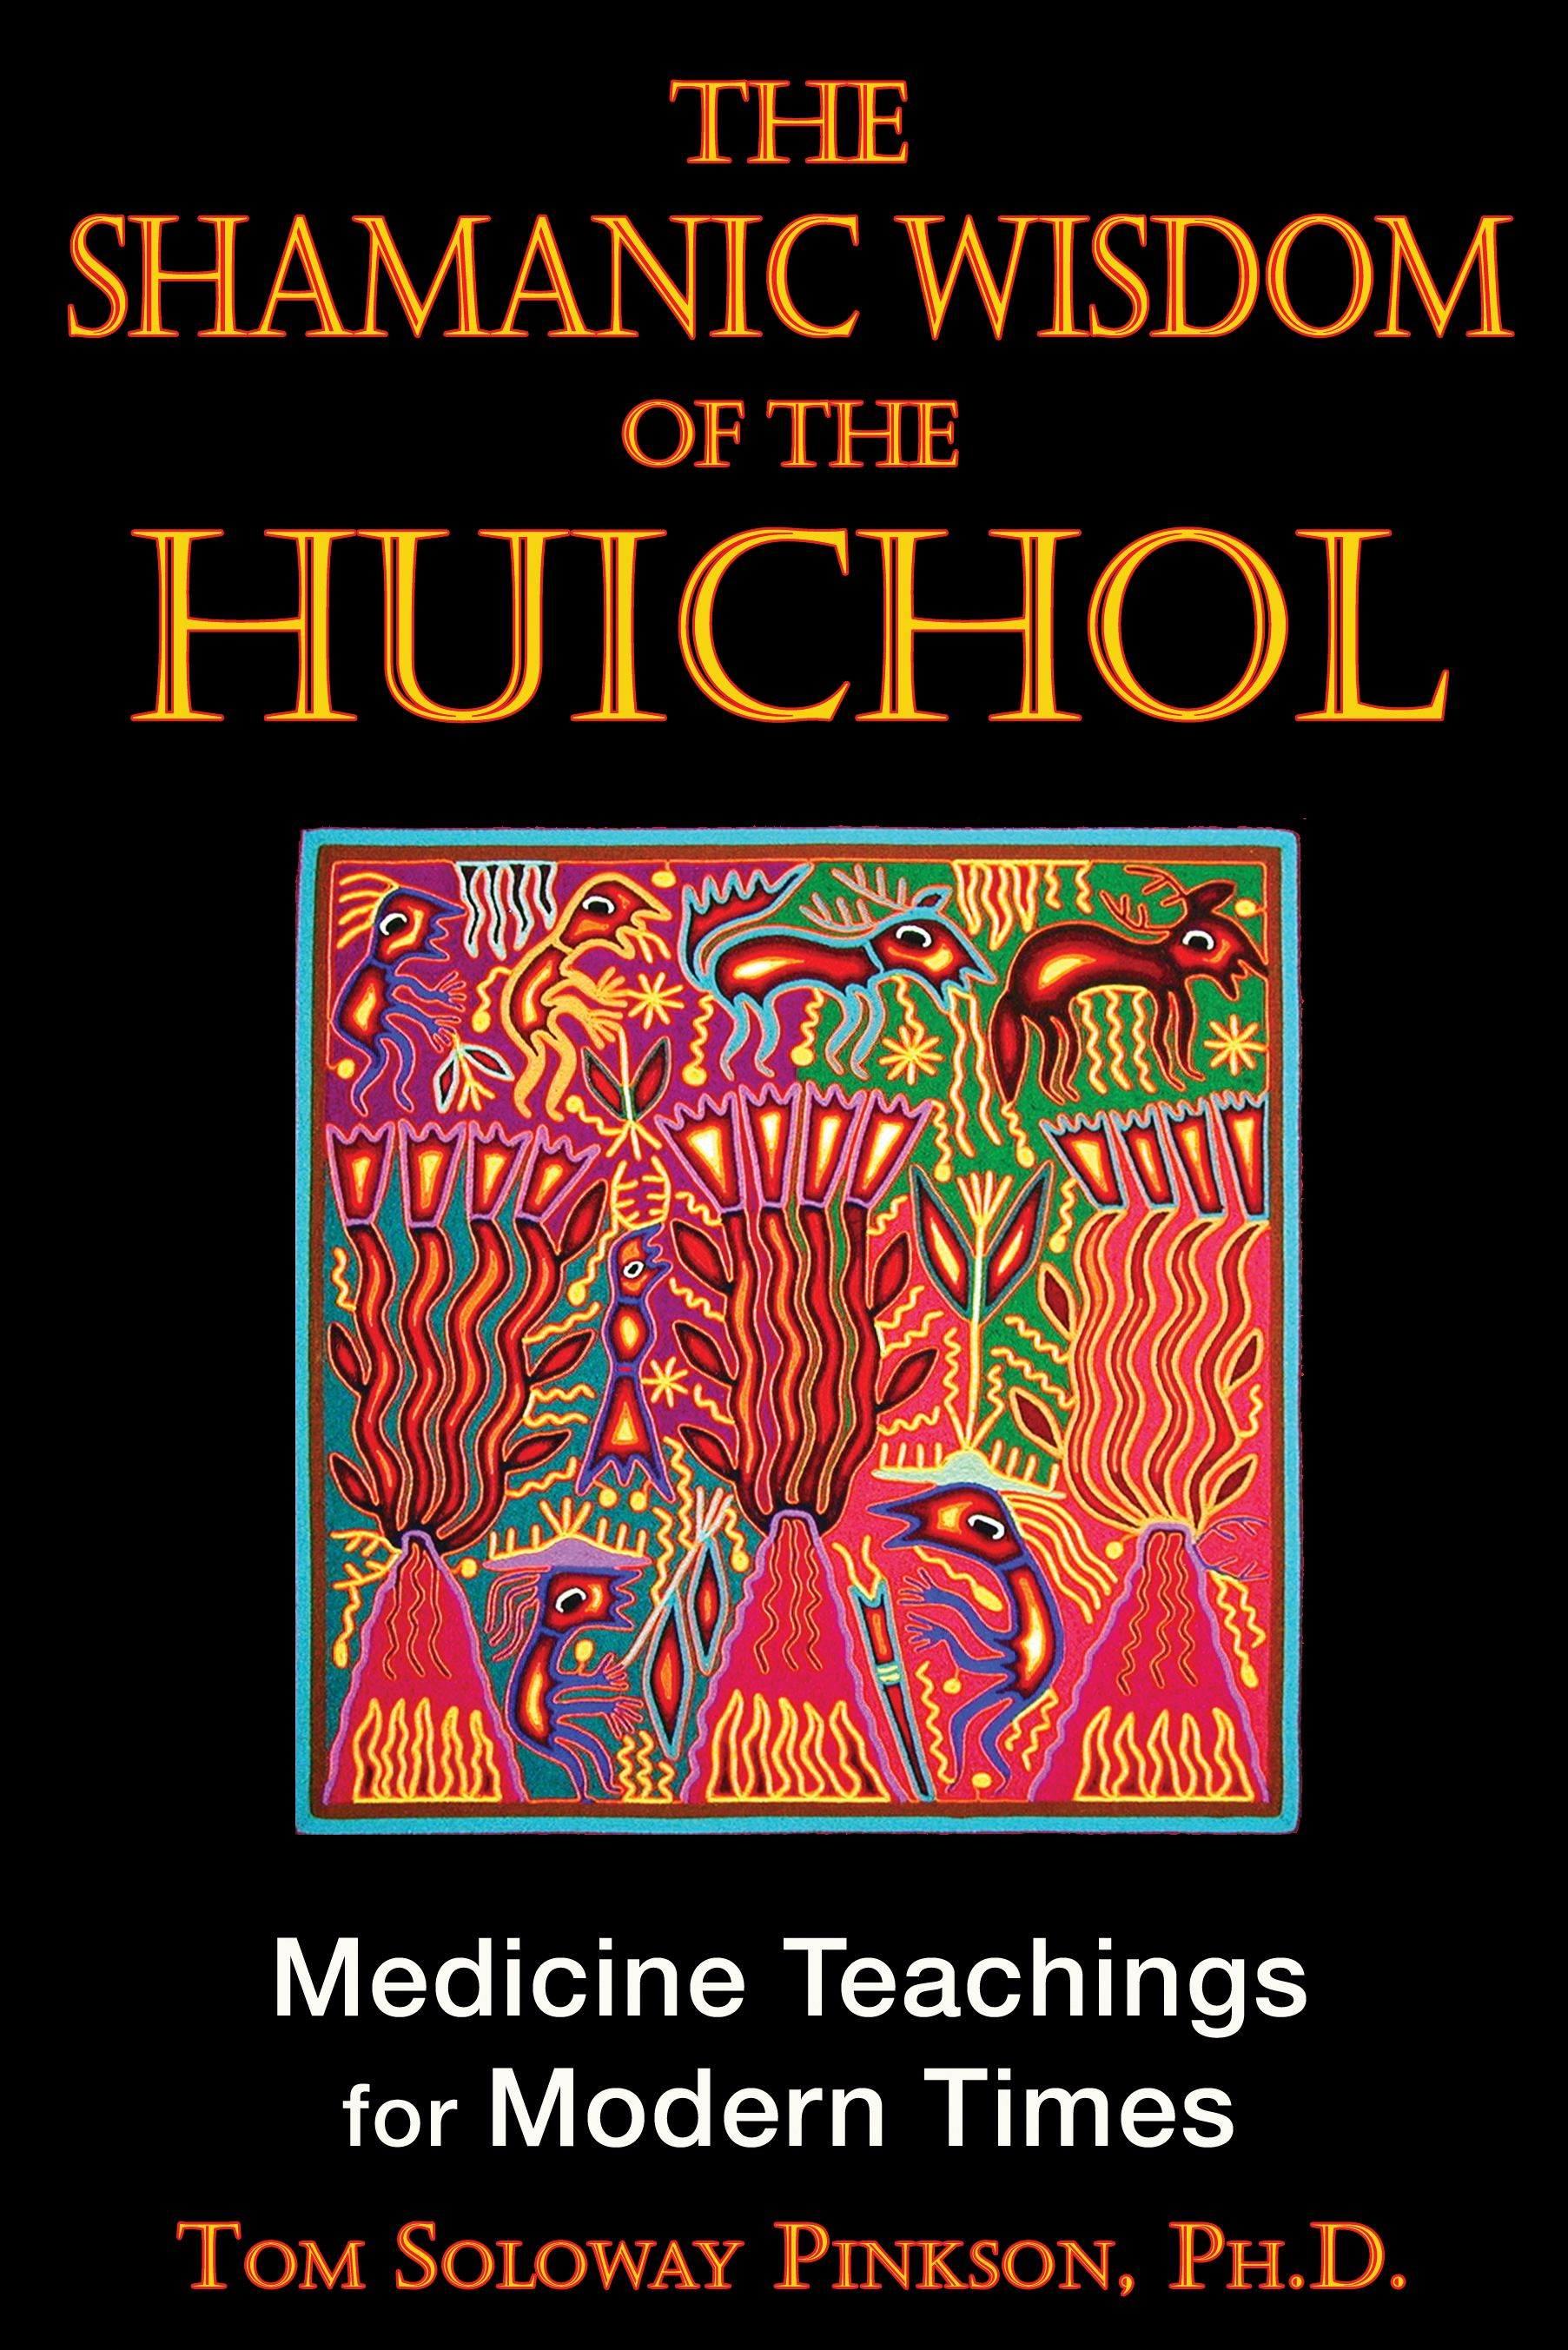 Book Cover Image (jpg): The Shamanic Wisdom of the Huichol. 2nd Edition, New  ...